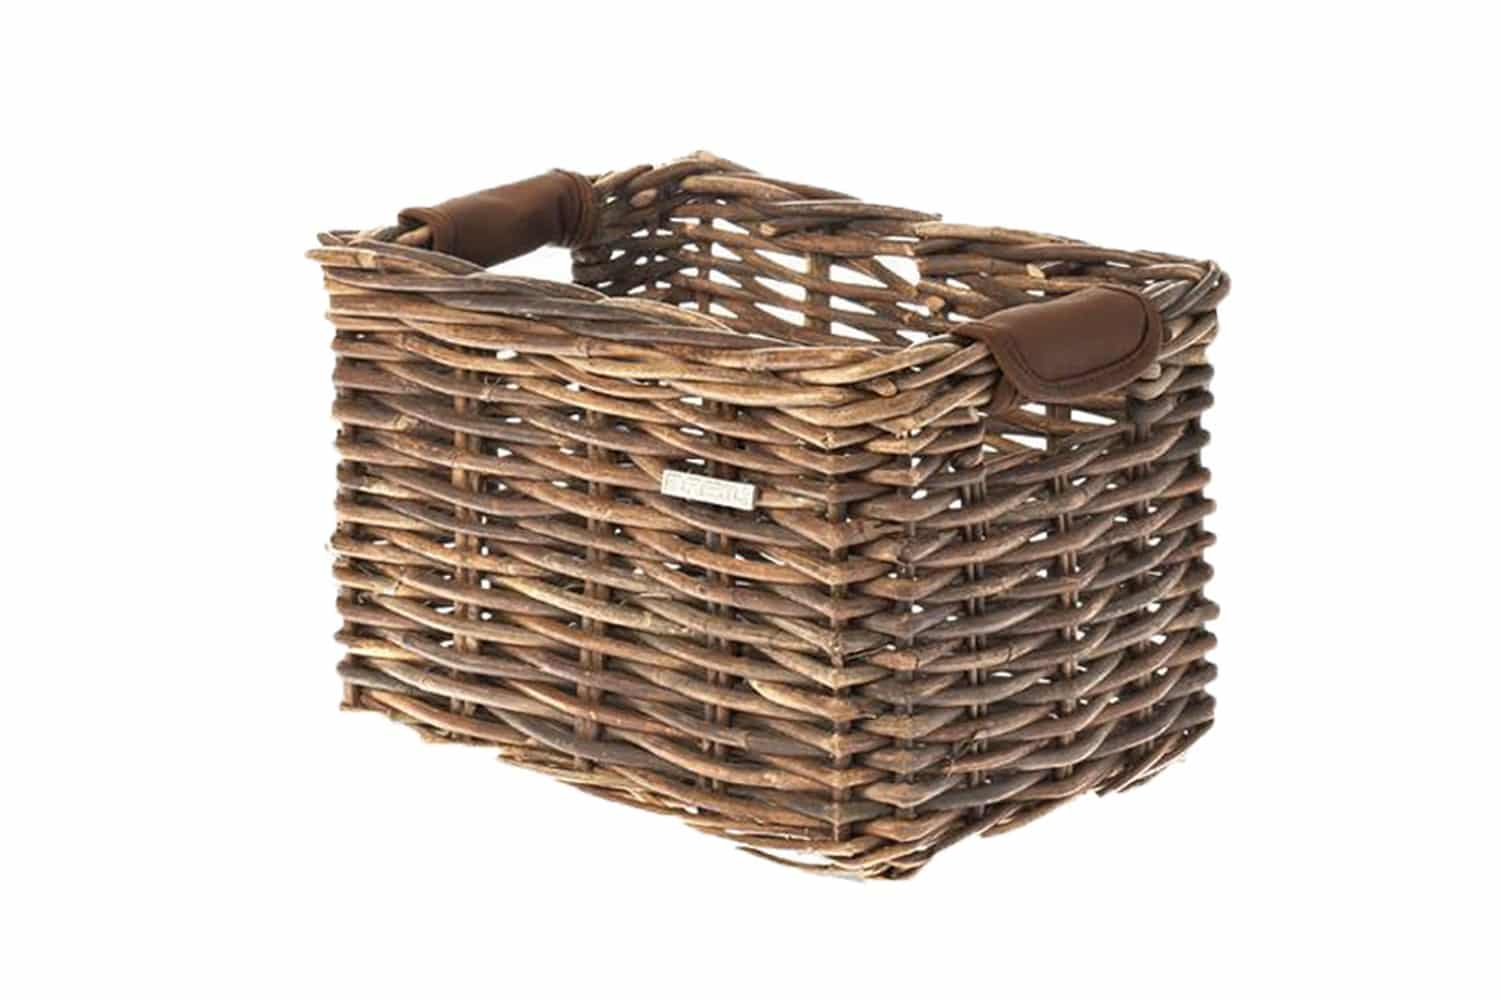 LEKKER Bike Basket Basil Dorset Natural